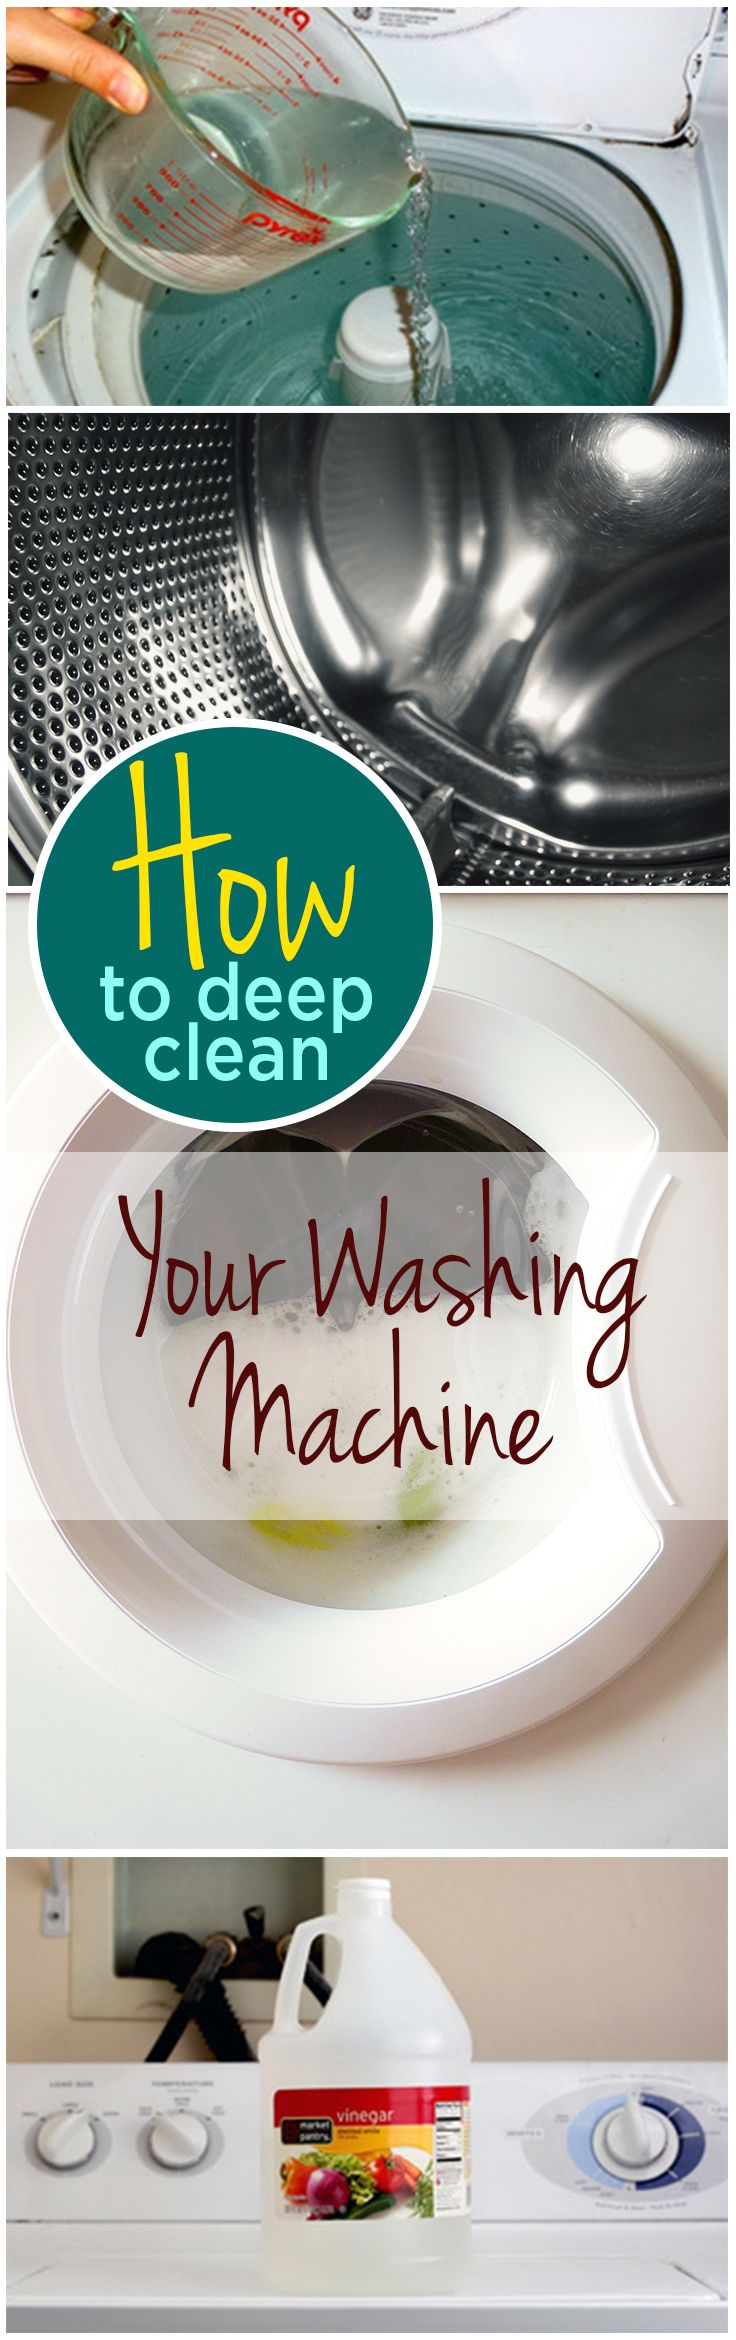 How to Deep Clean Your Washing Machine (1)